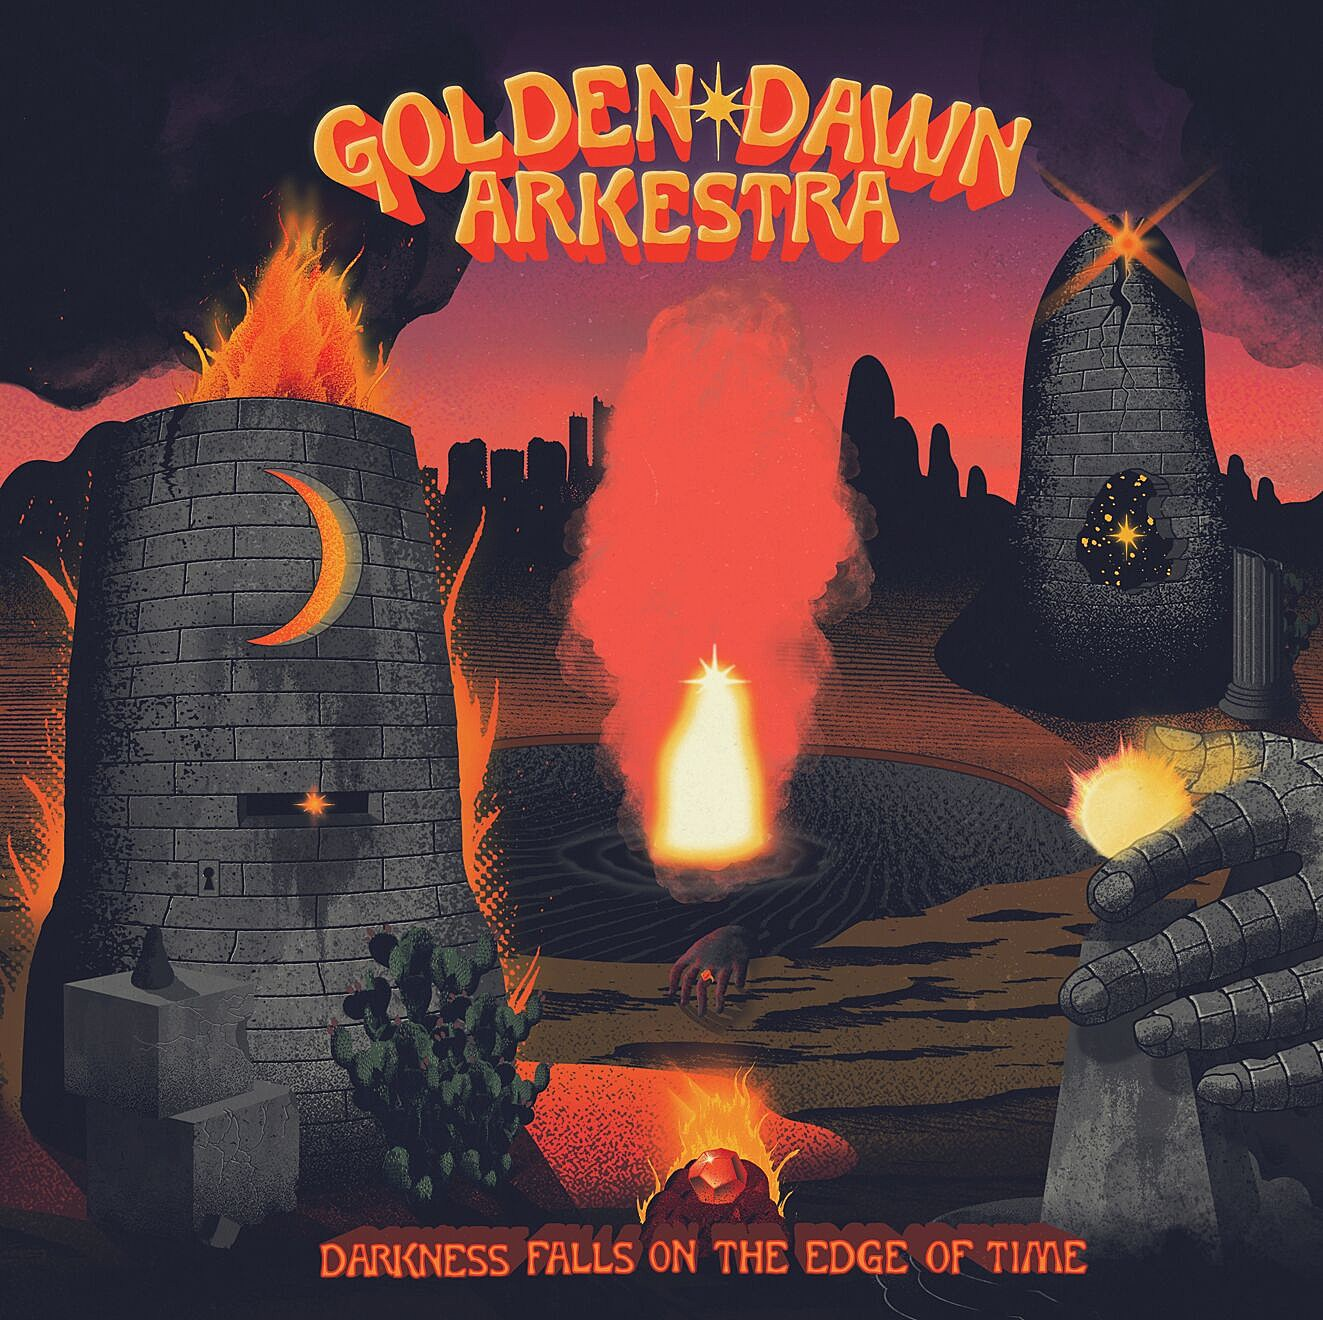 Golden Dawn Arkestra Darkness Falls On The Edge of Time